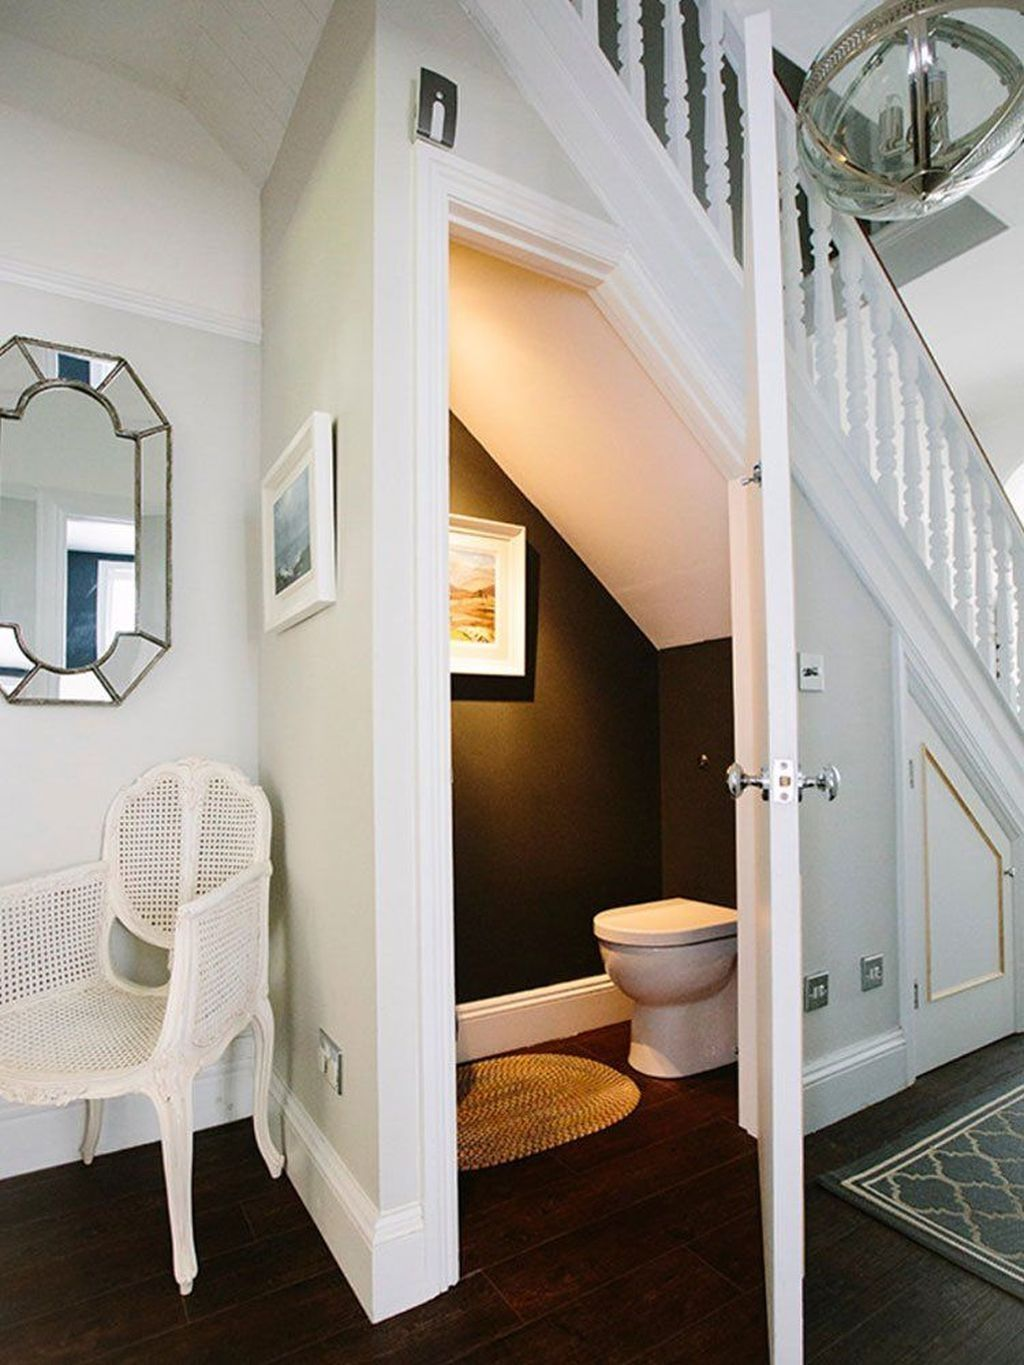 Framing A Basement Unique Basements Unfinished Basement Lighting Ideas Small Basement Remodel Bathroom Under Stairs Room Under Stairs